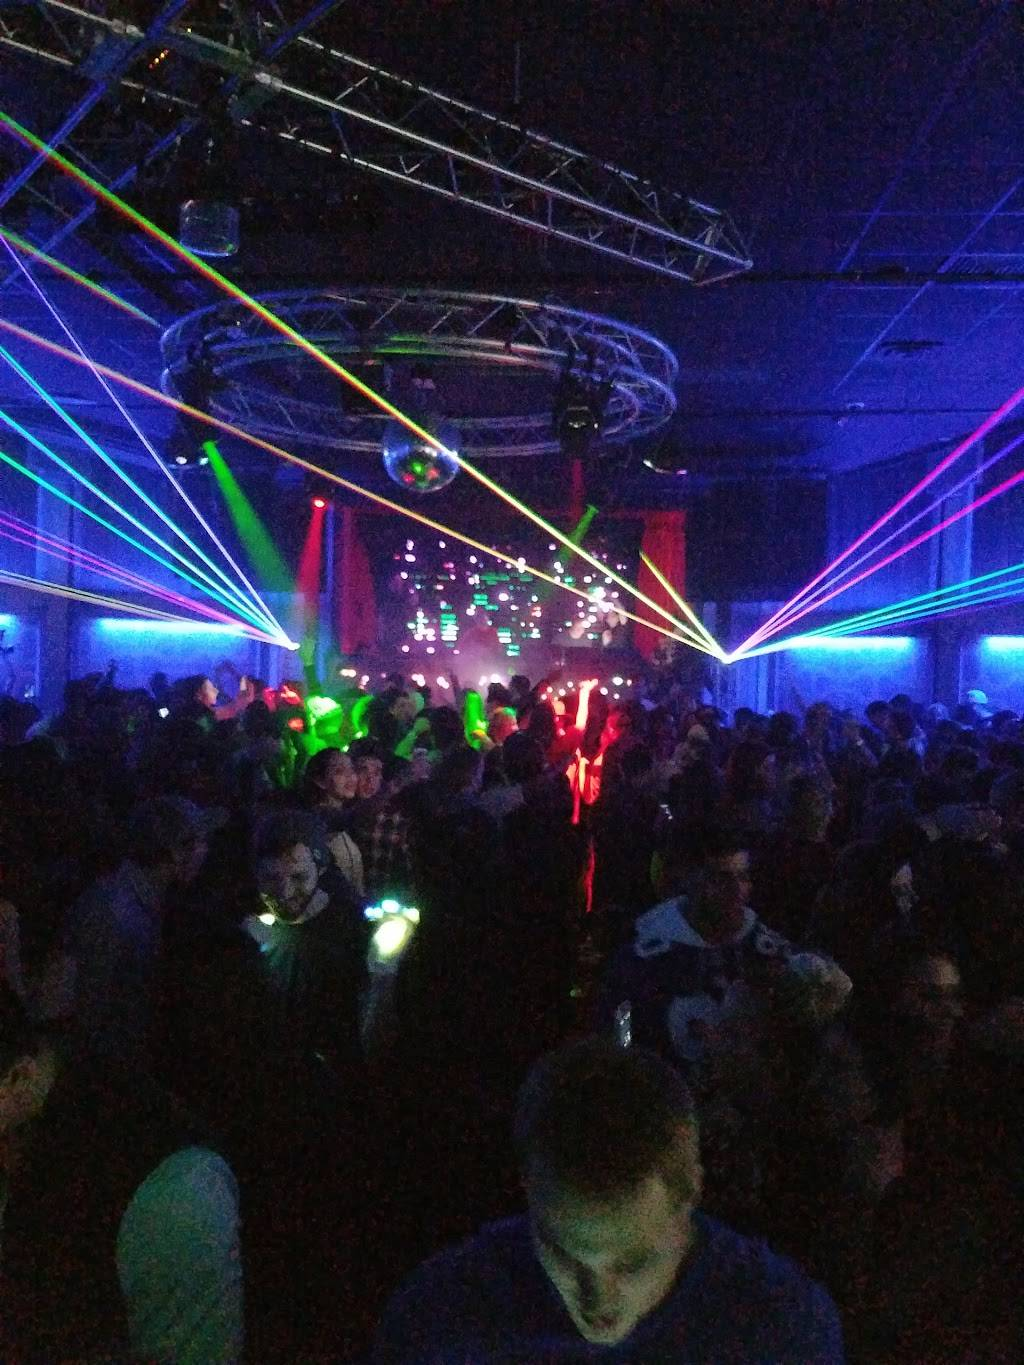 Torrent Nightclub - night club  | Photo 6 of 10 | Address: 512 York Rd, Towson, MD 21204, USA | Phone: (443) 687-0292